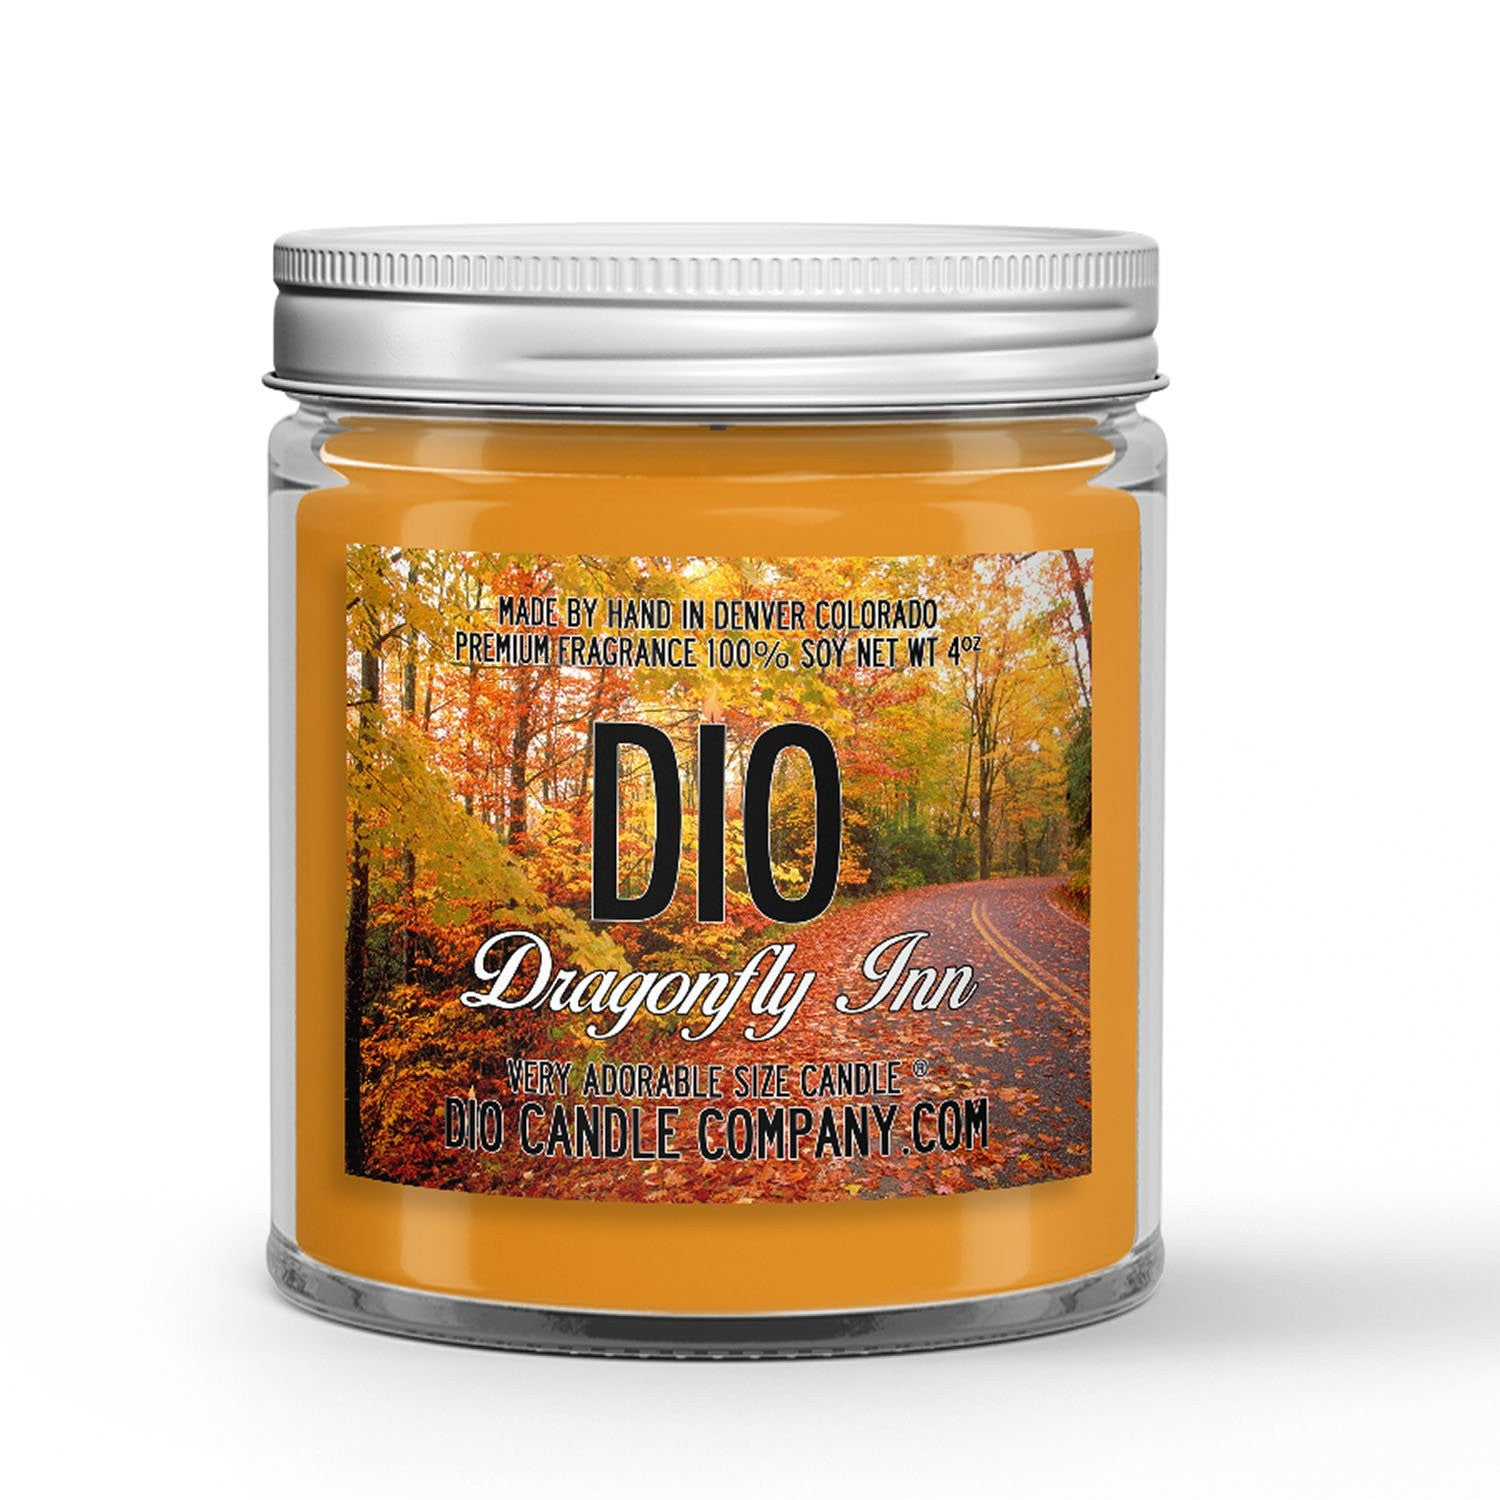 Dragonfly Inn Candle - Apples - Cinnamon - Fresh Baked Pies - 4oz Very Adorable Size Candle® - Dio Candle Company